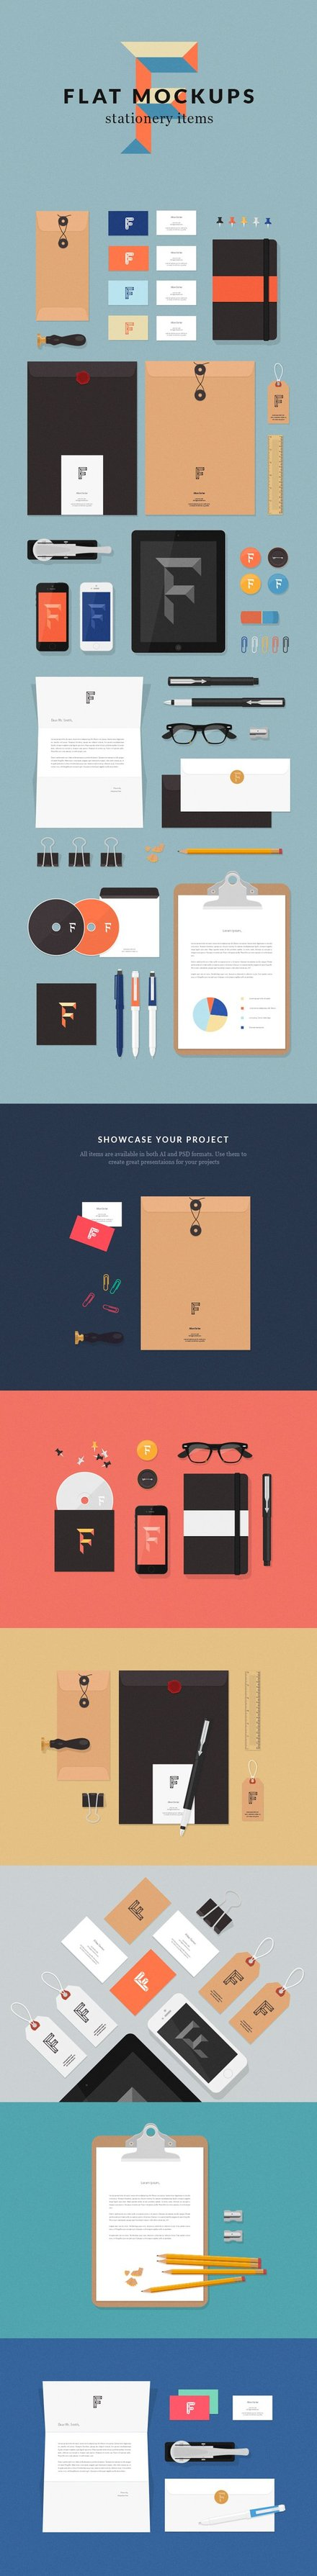 Flat MockUps - Stationery Items